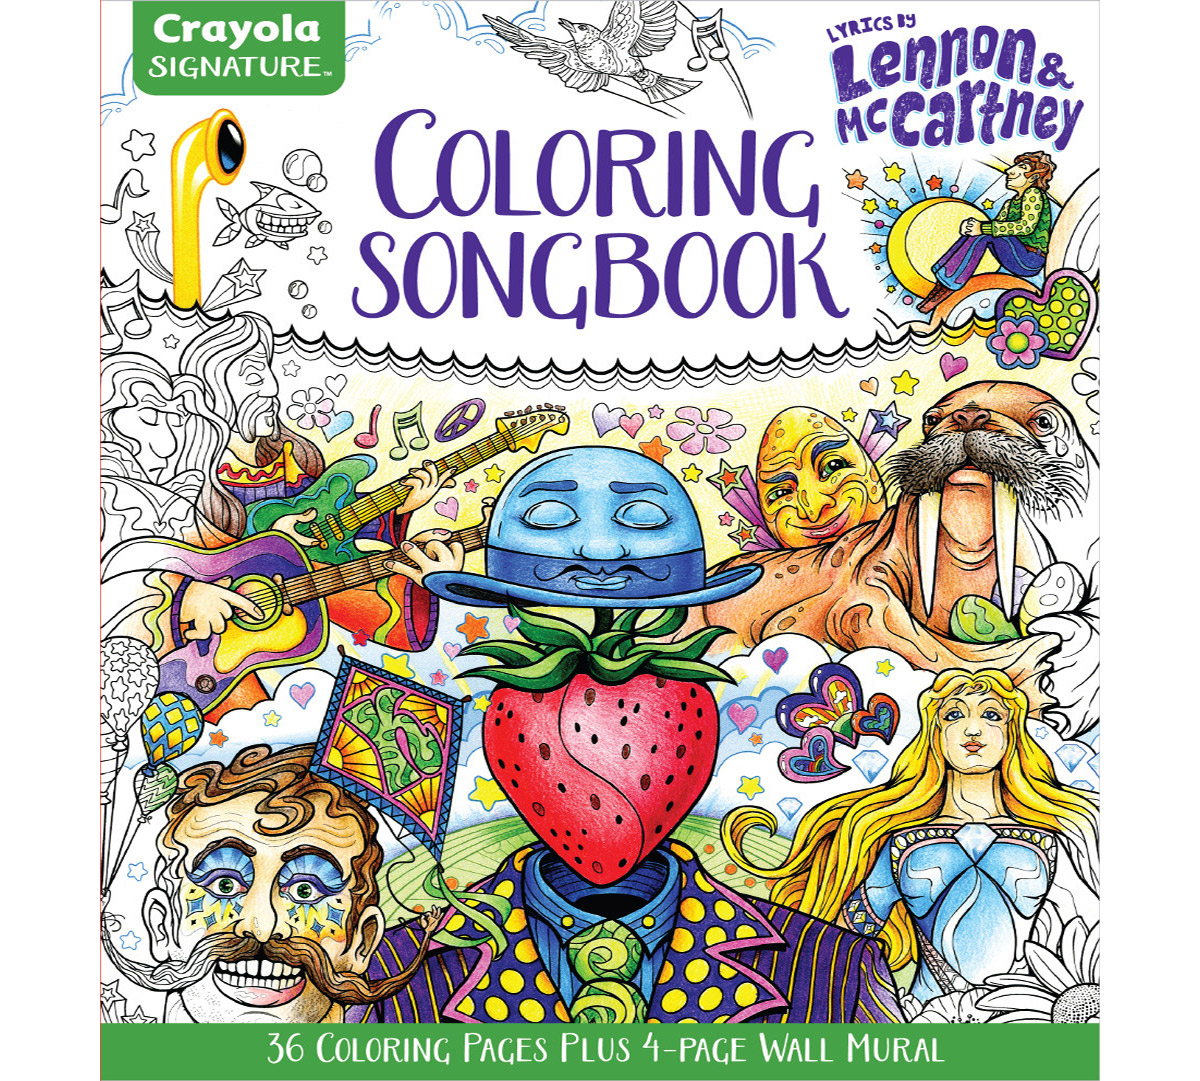 Signature coloring songbook lyrics of john lennon paul mccartney